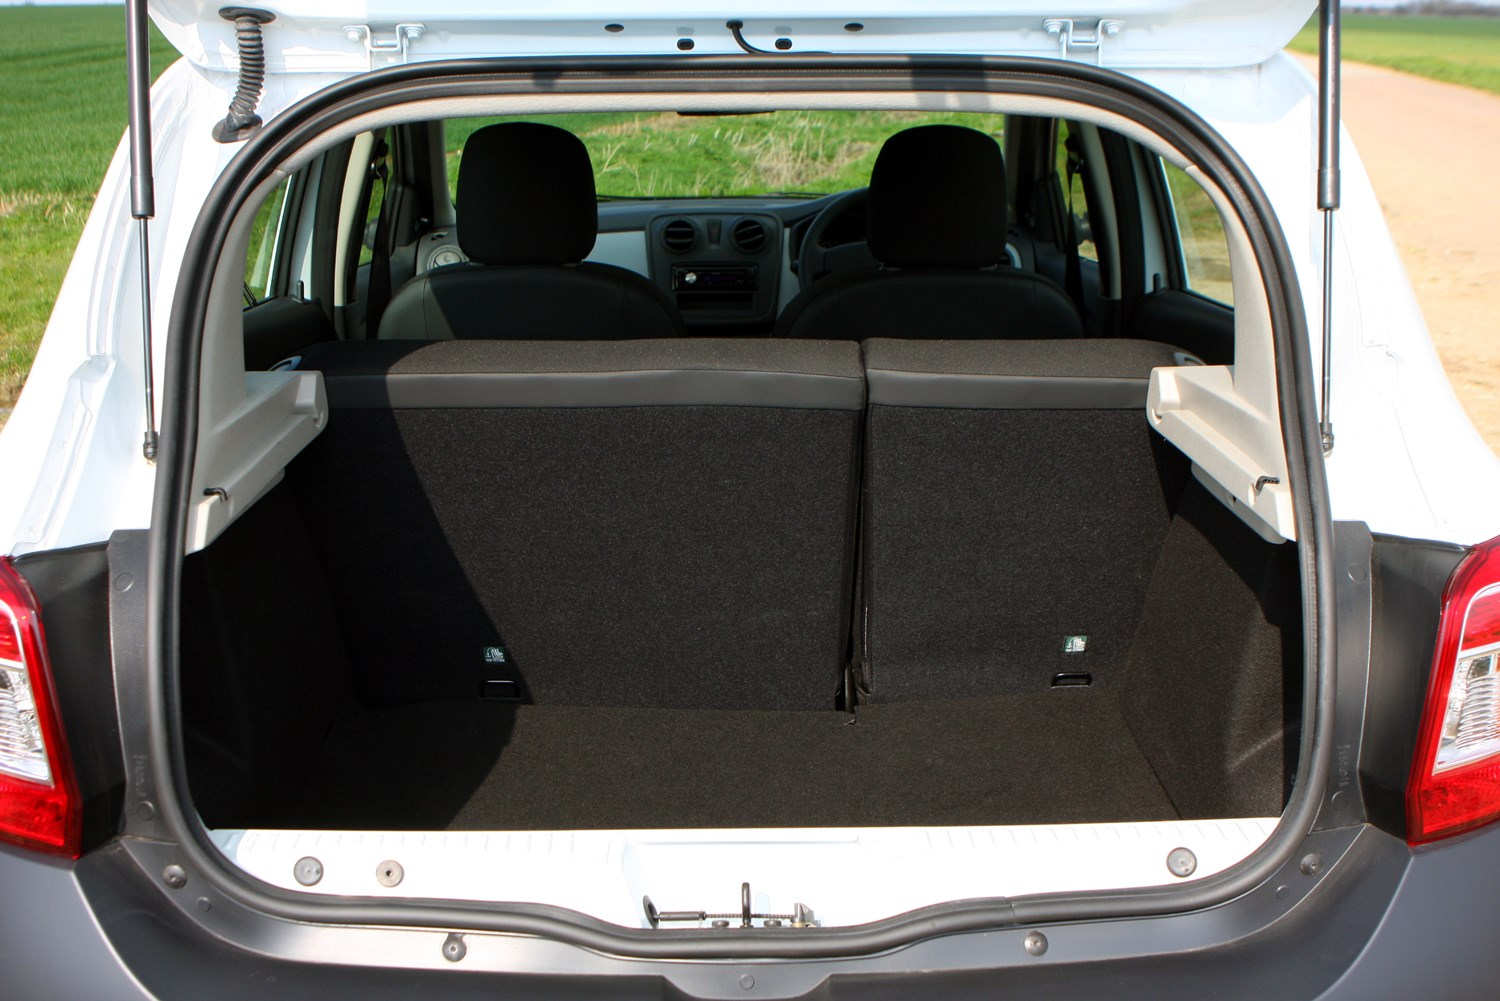 dacia sandero hatchback 2013 photos parkers. Black Bedroom Furniture Sets. Home Design Ideas